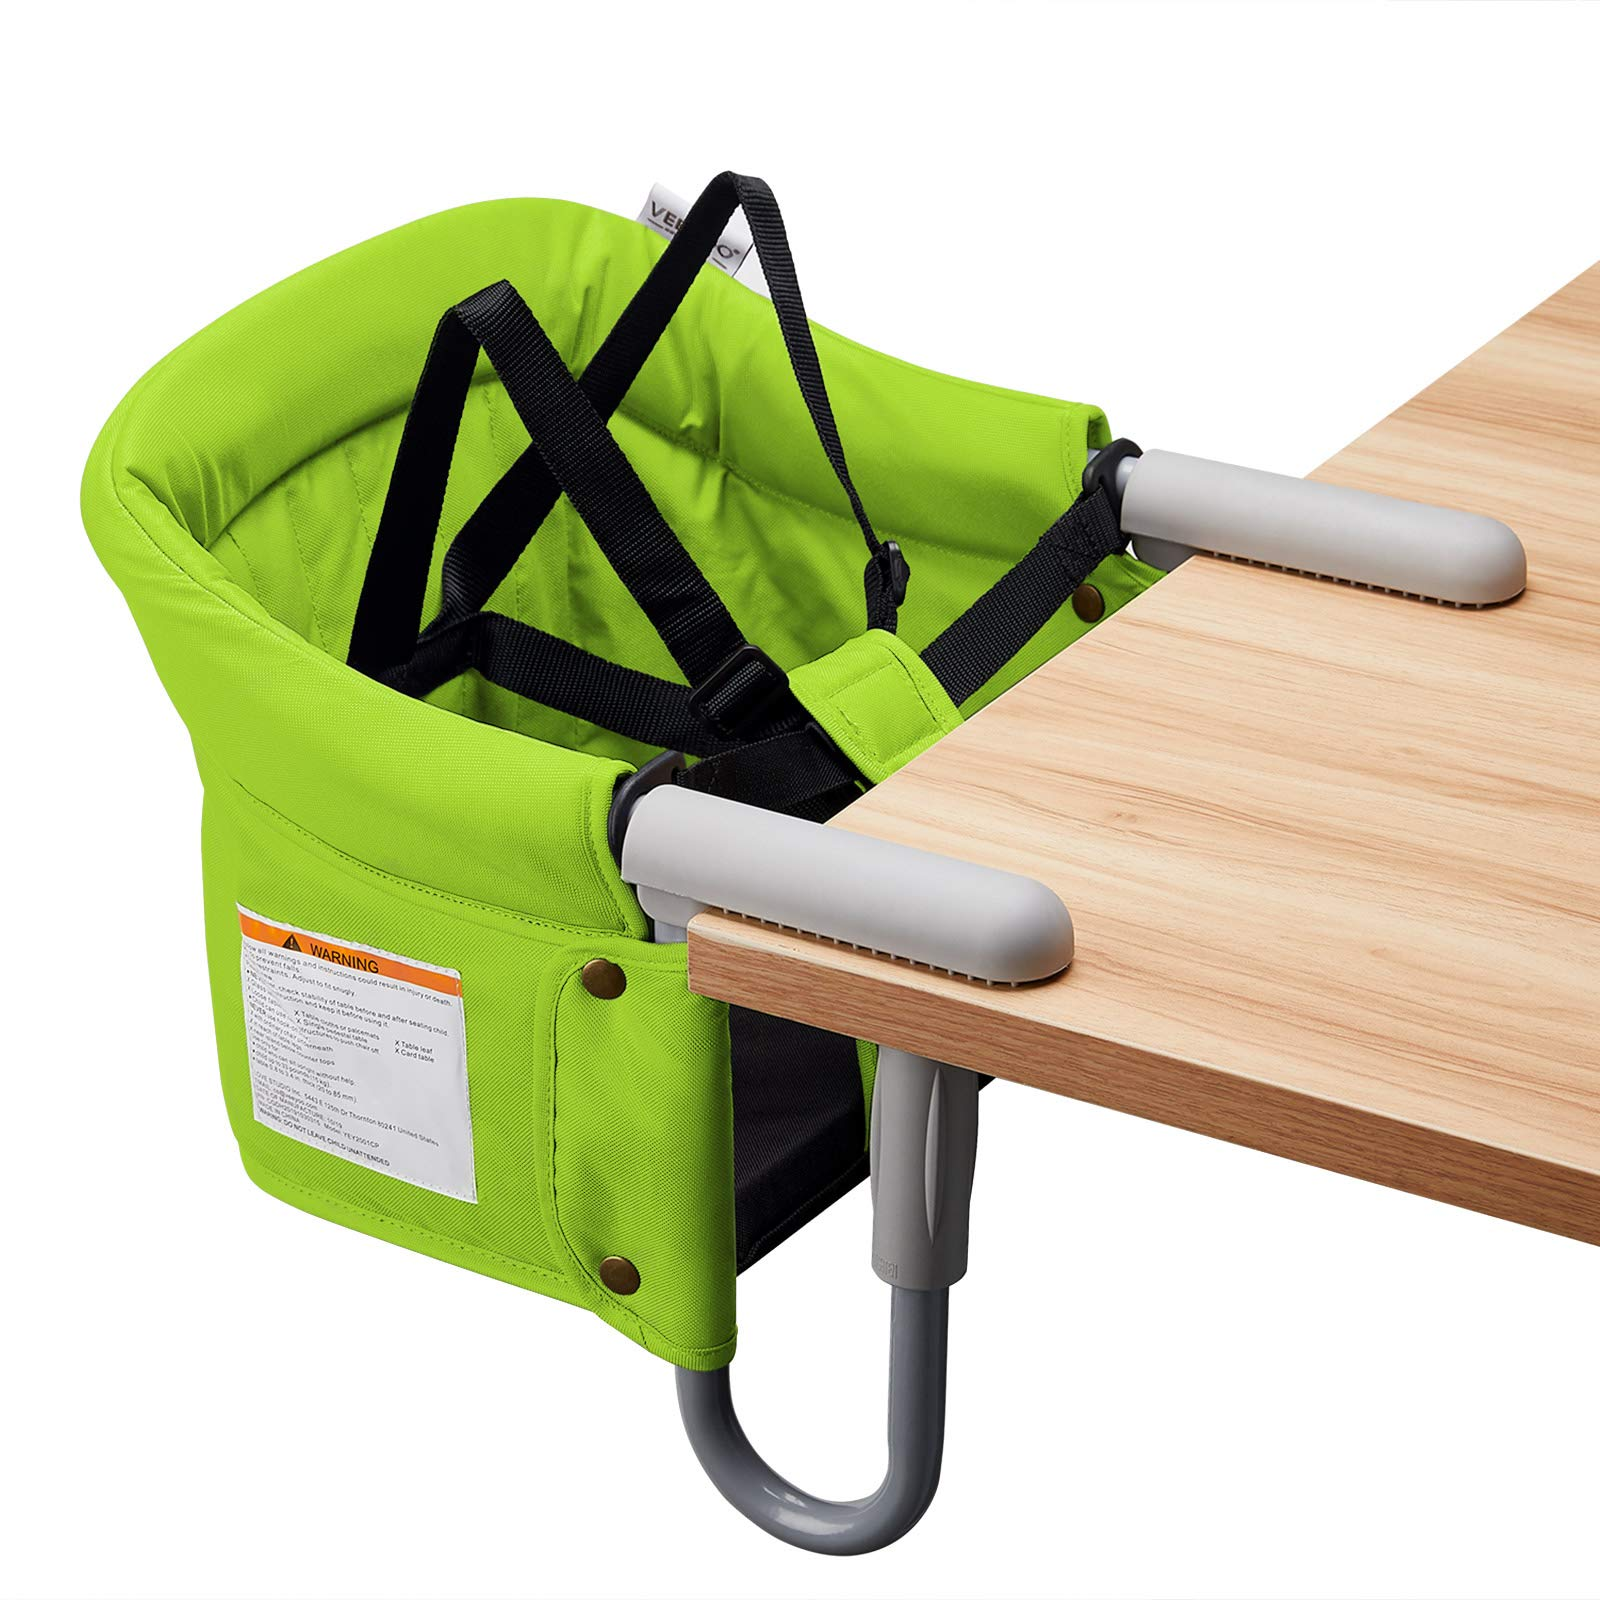 VEEYOO Clip On High Chairs - Fast Table Chair for Babies and Toddlers, Portable Baby Seat for Table (Green)